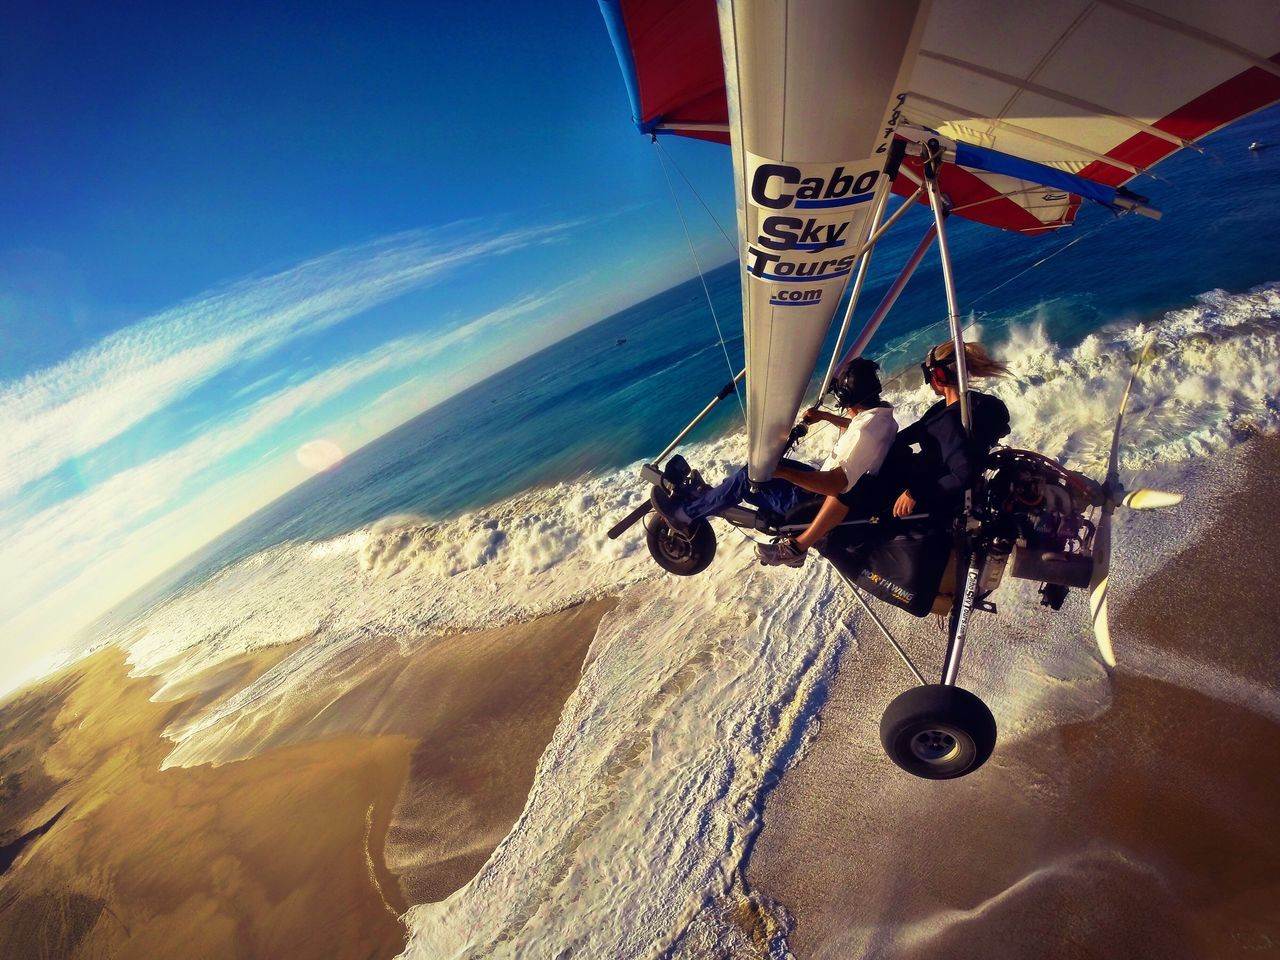 Water Sea Scenics Sand Beauty In Nature Beach Nature Horizon Over Water Landscape LosCabos Skydiving Fly Away Adrenaline Junkie Adrenaline Determination Travel Togetherness Nature Adventure Extreme Sports Adventure Time Sportextreme Bajacalifornia Mexico Cabo San Lucas